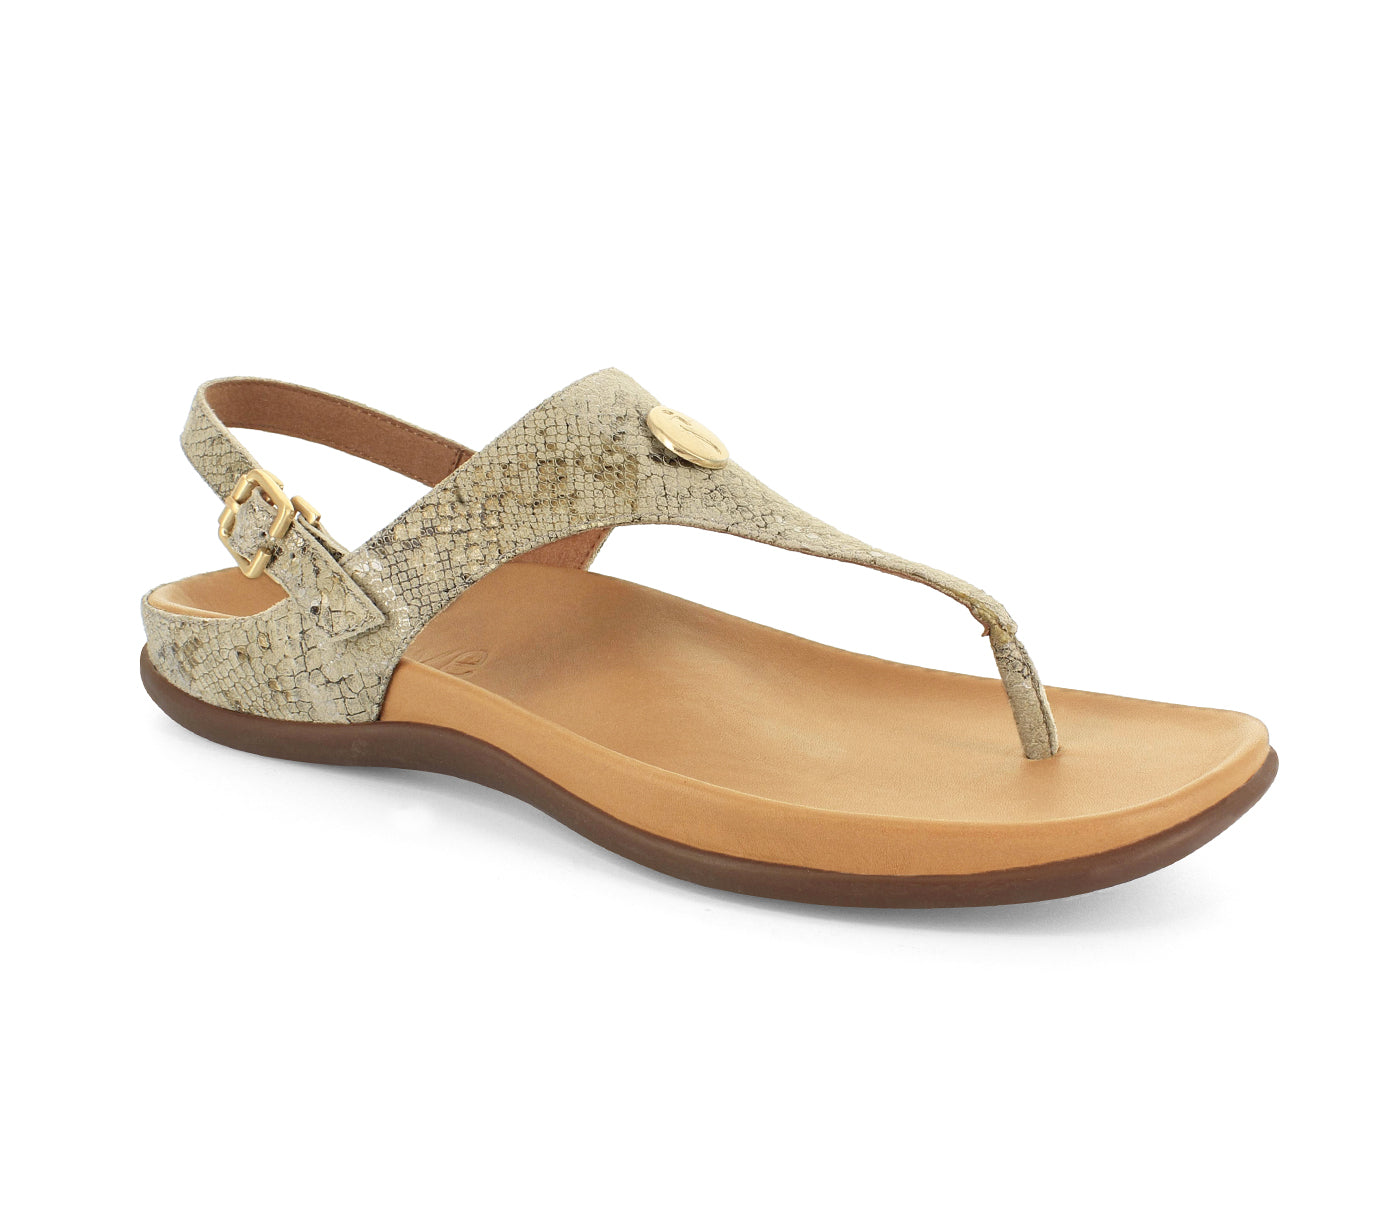 STRIVE TROPEZ Back Strap Toe Post Sandal with Arch Support - Metallic Snake